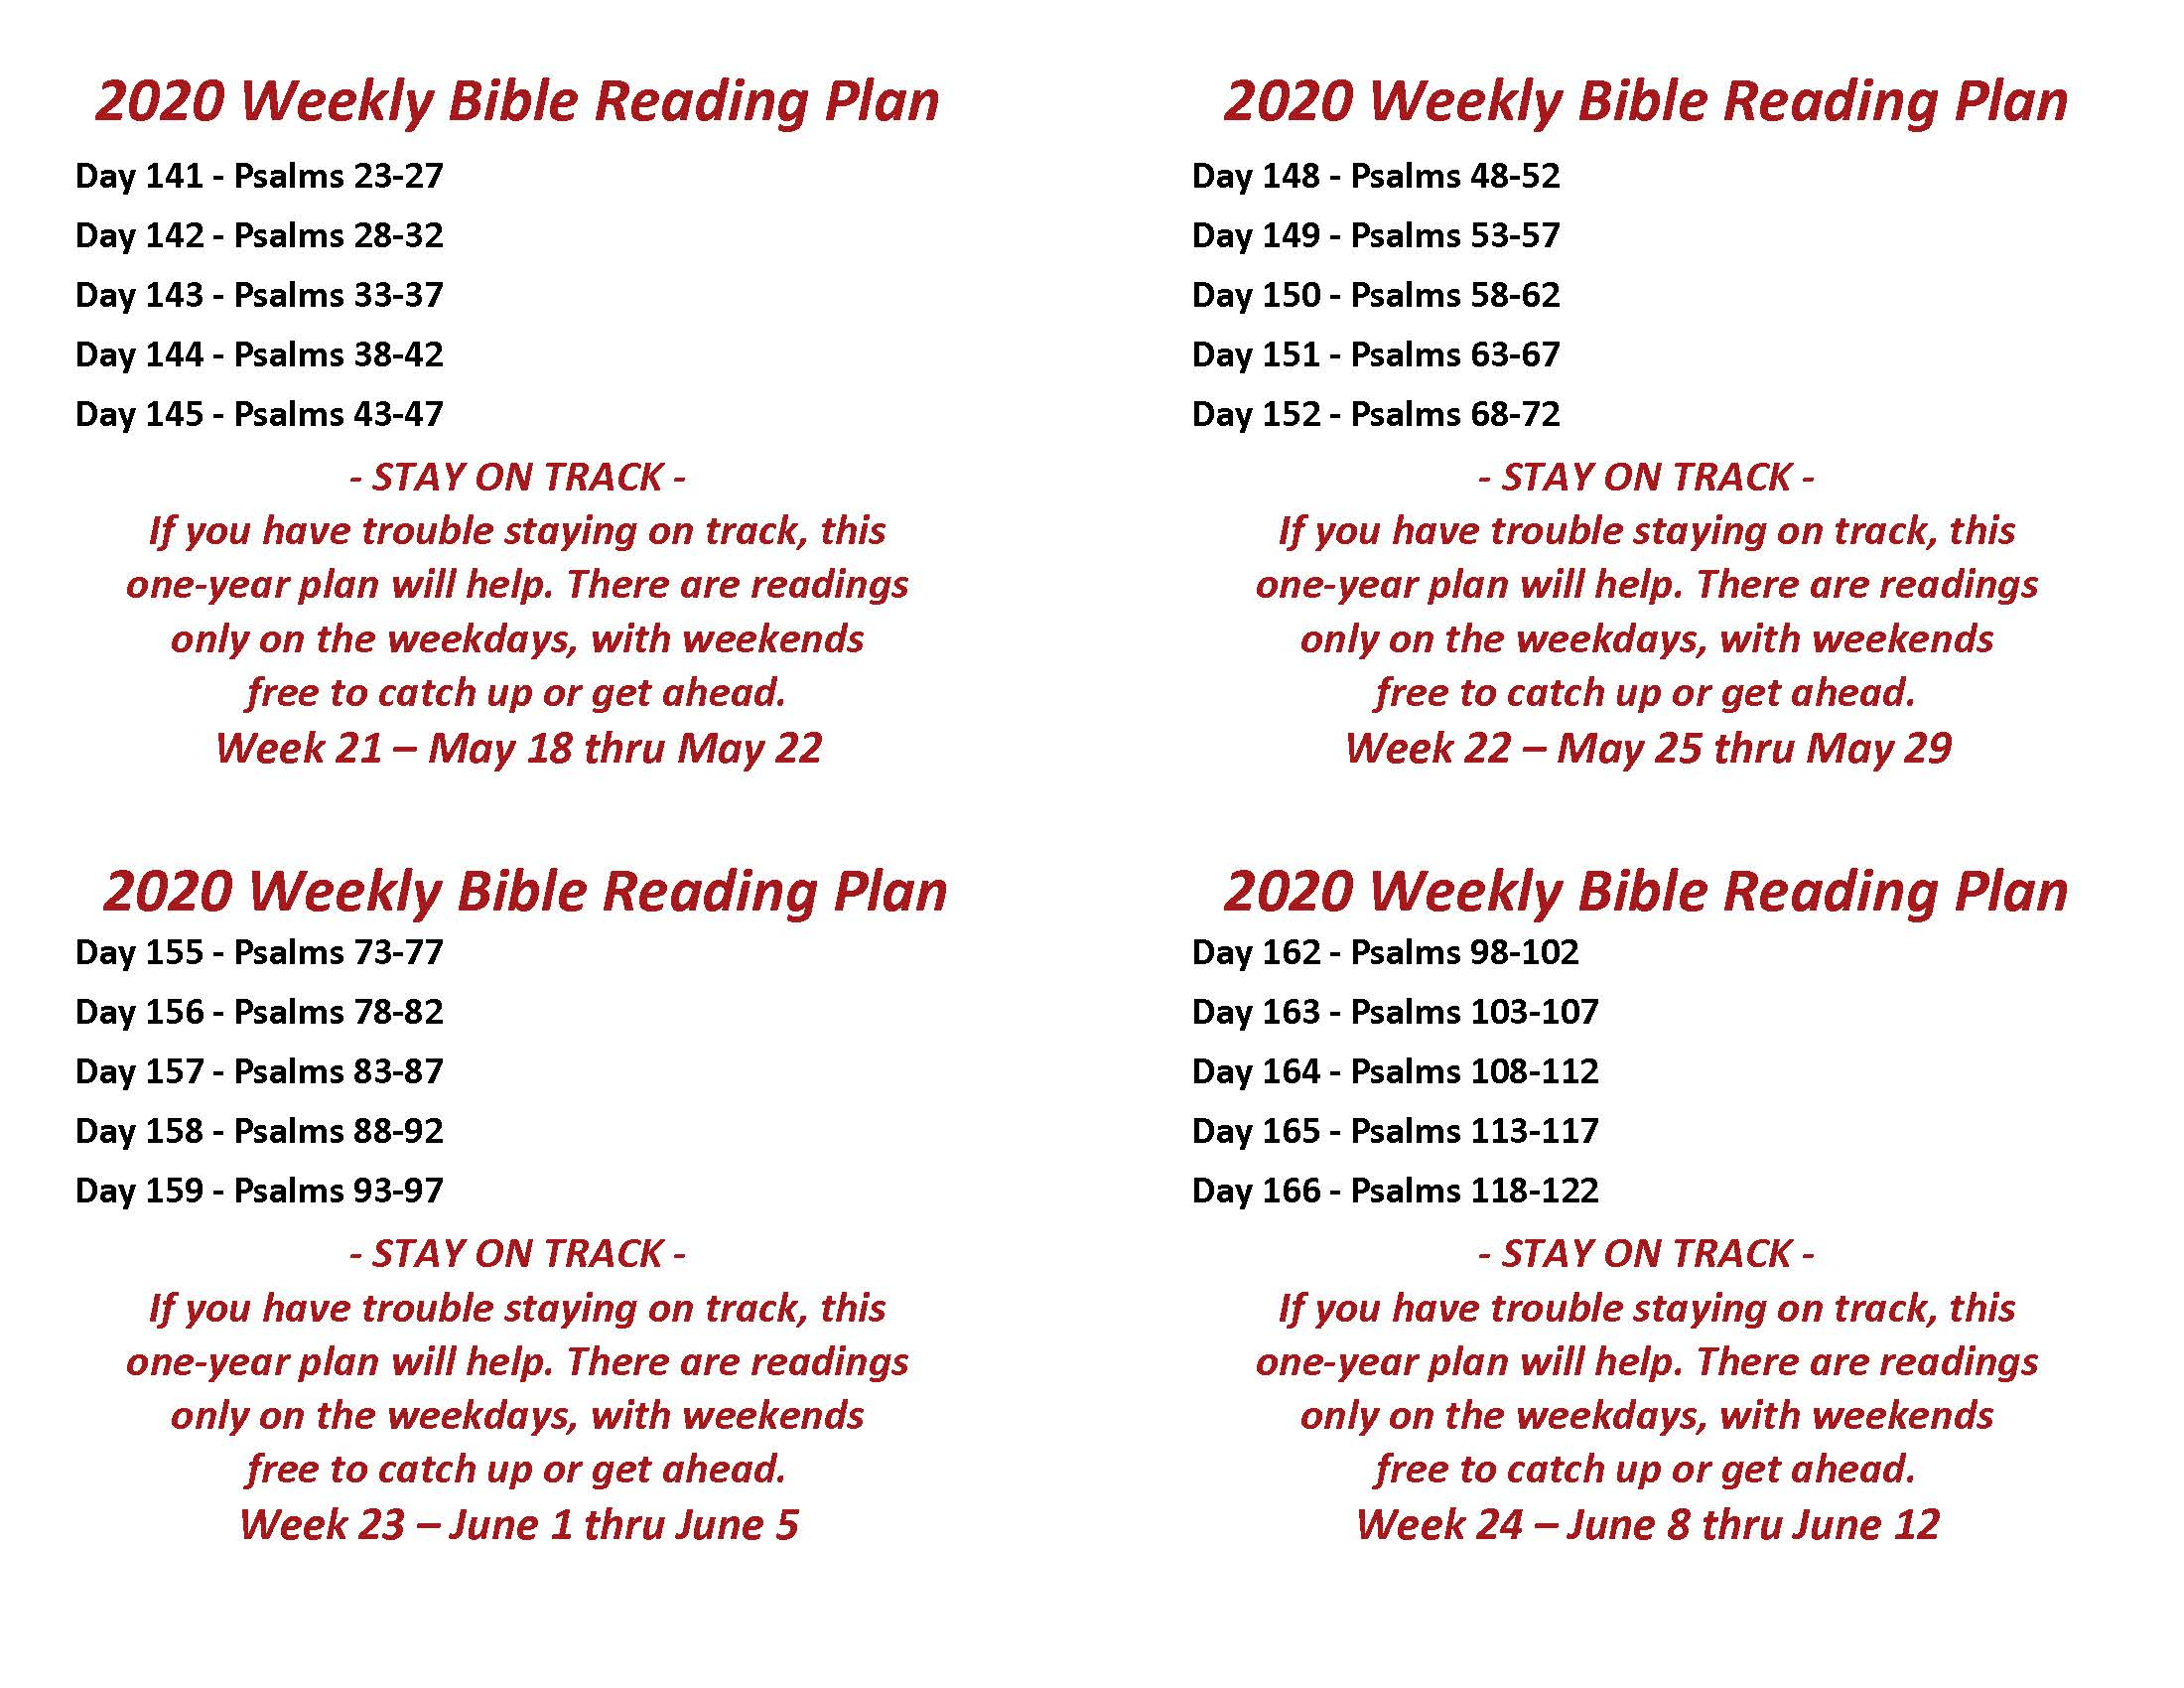 Read the Bible Through in a Year May 18 thru June 12